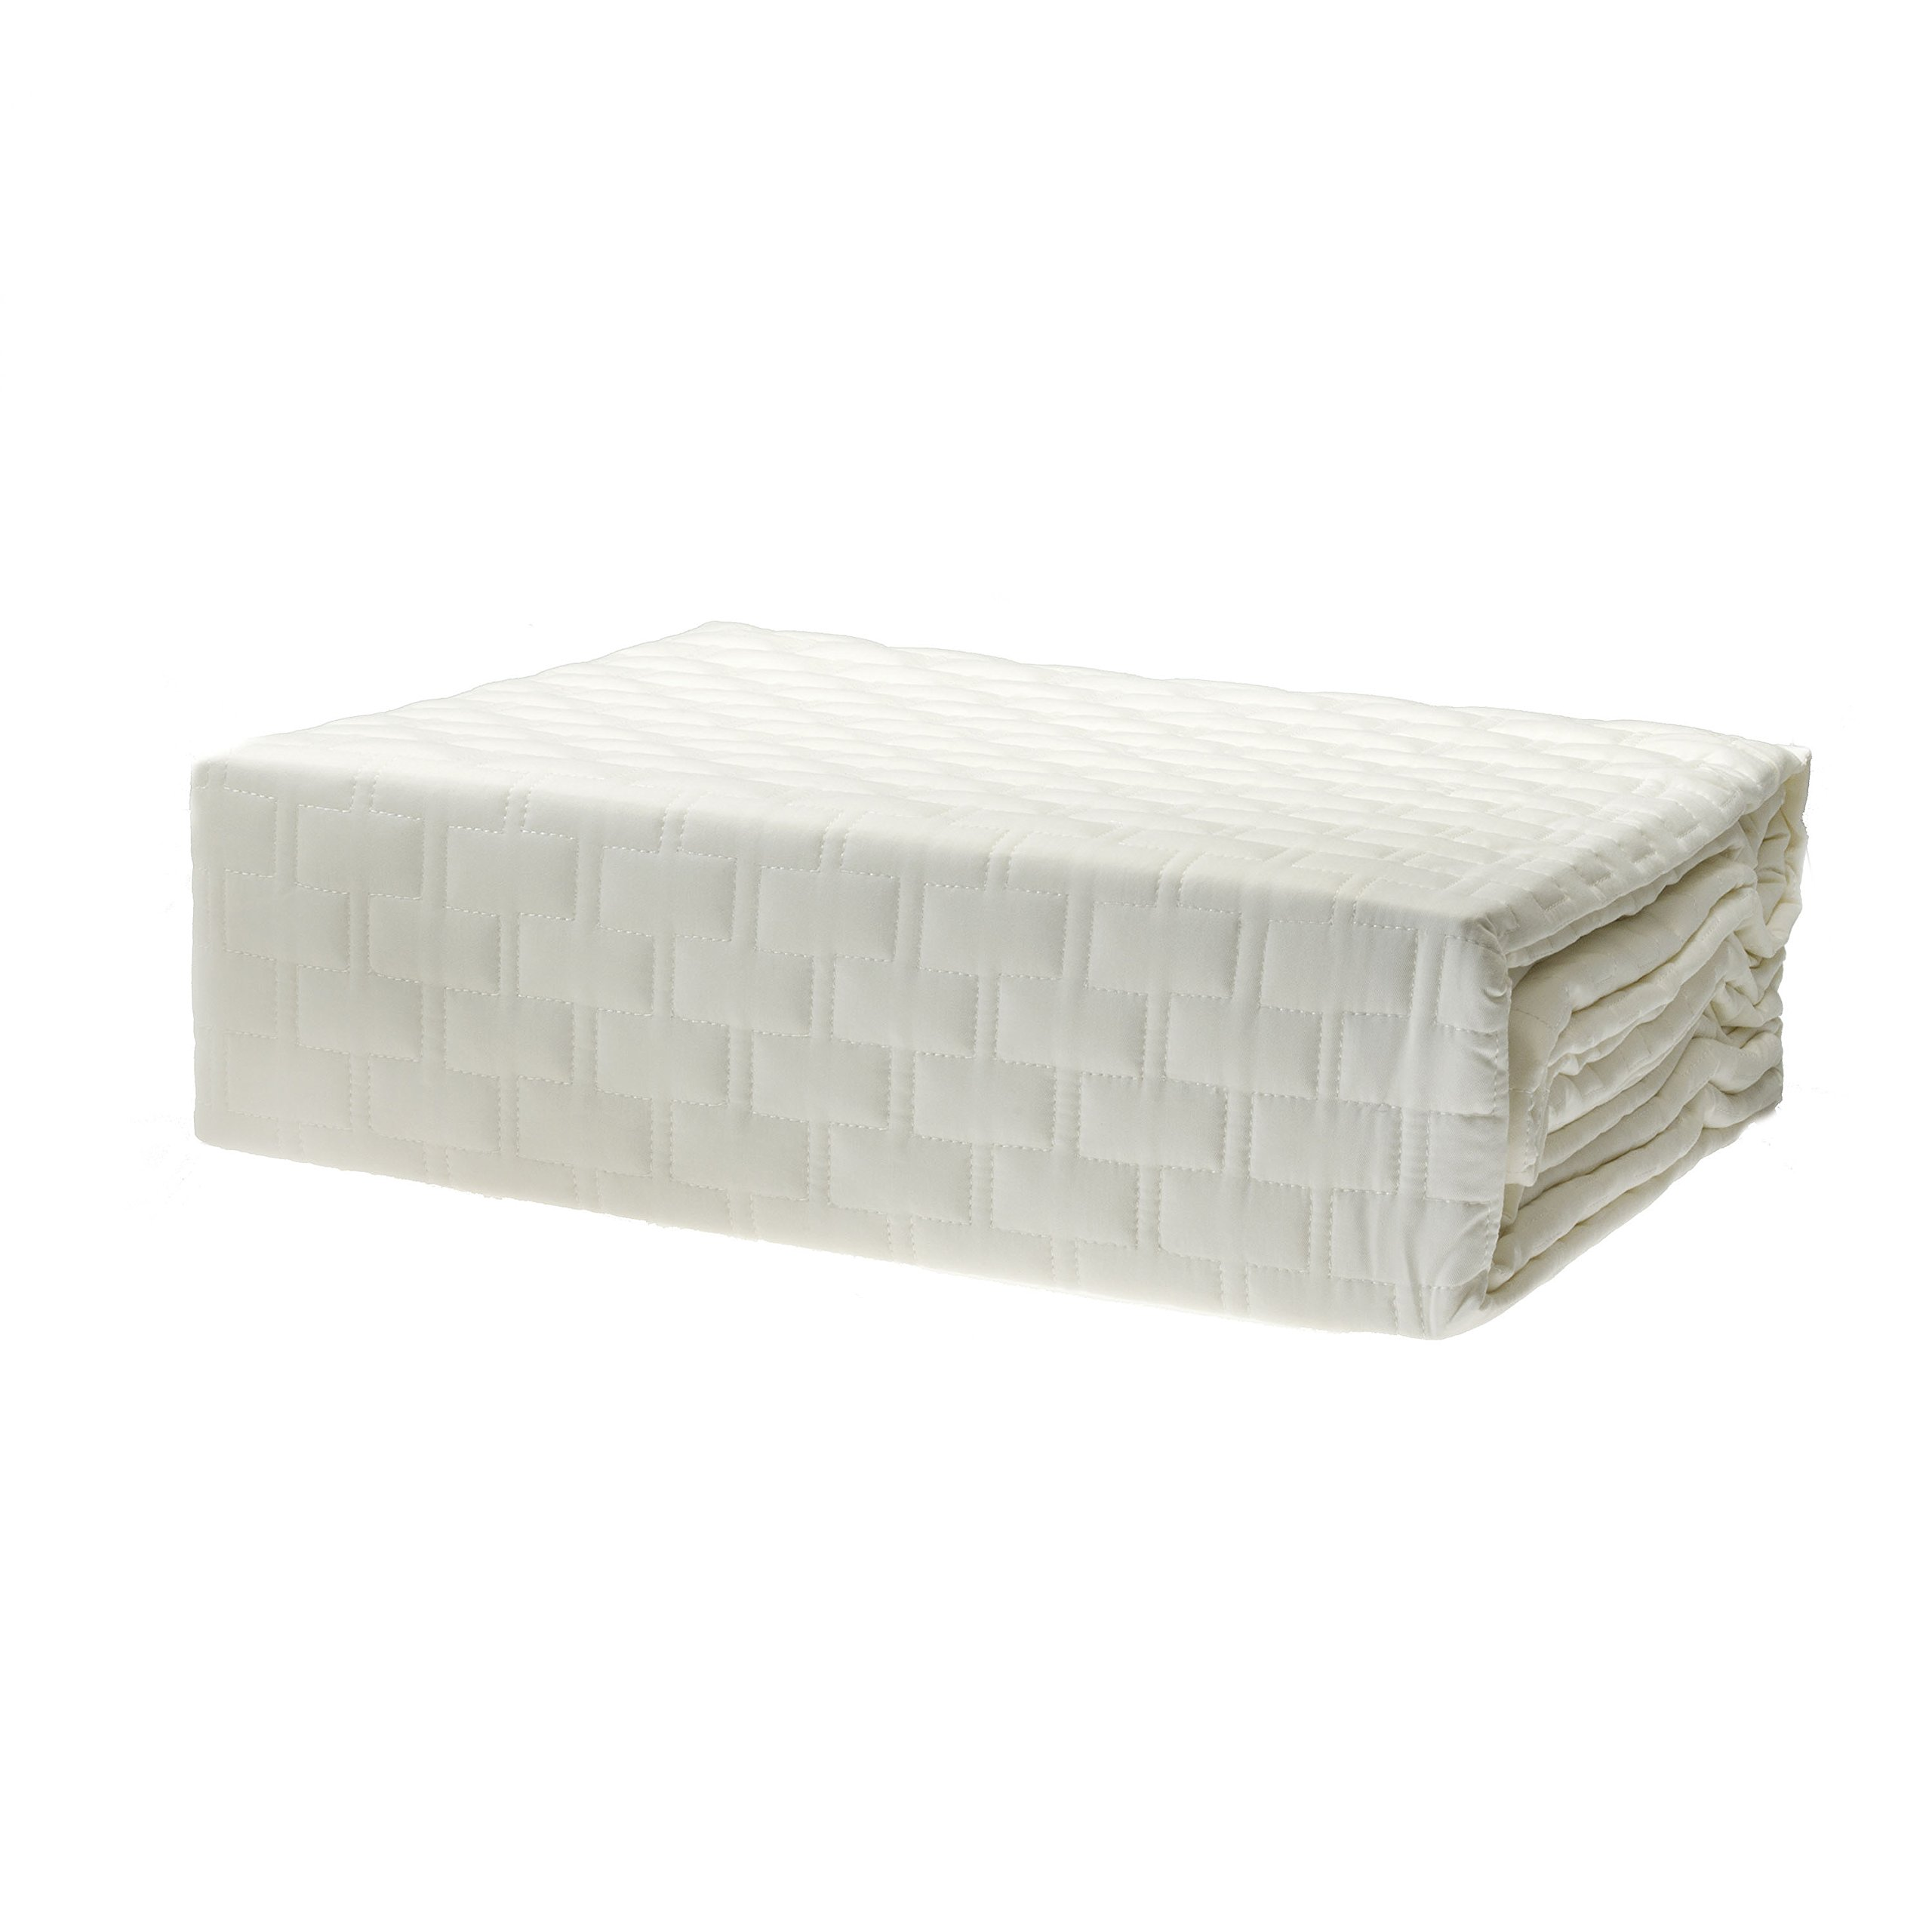 BedVoyage Coverlet, White, King by BedVoyage